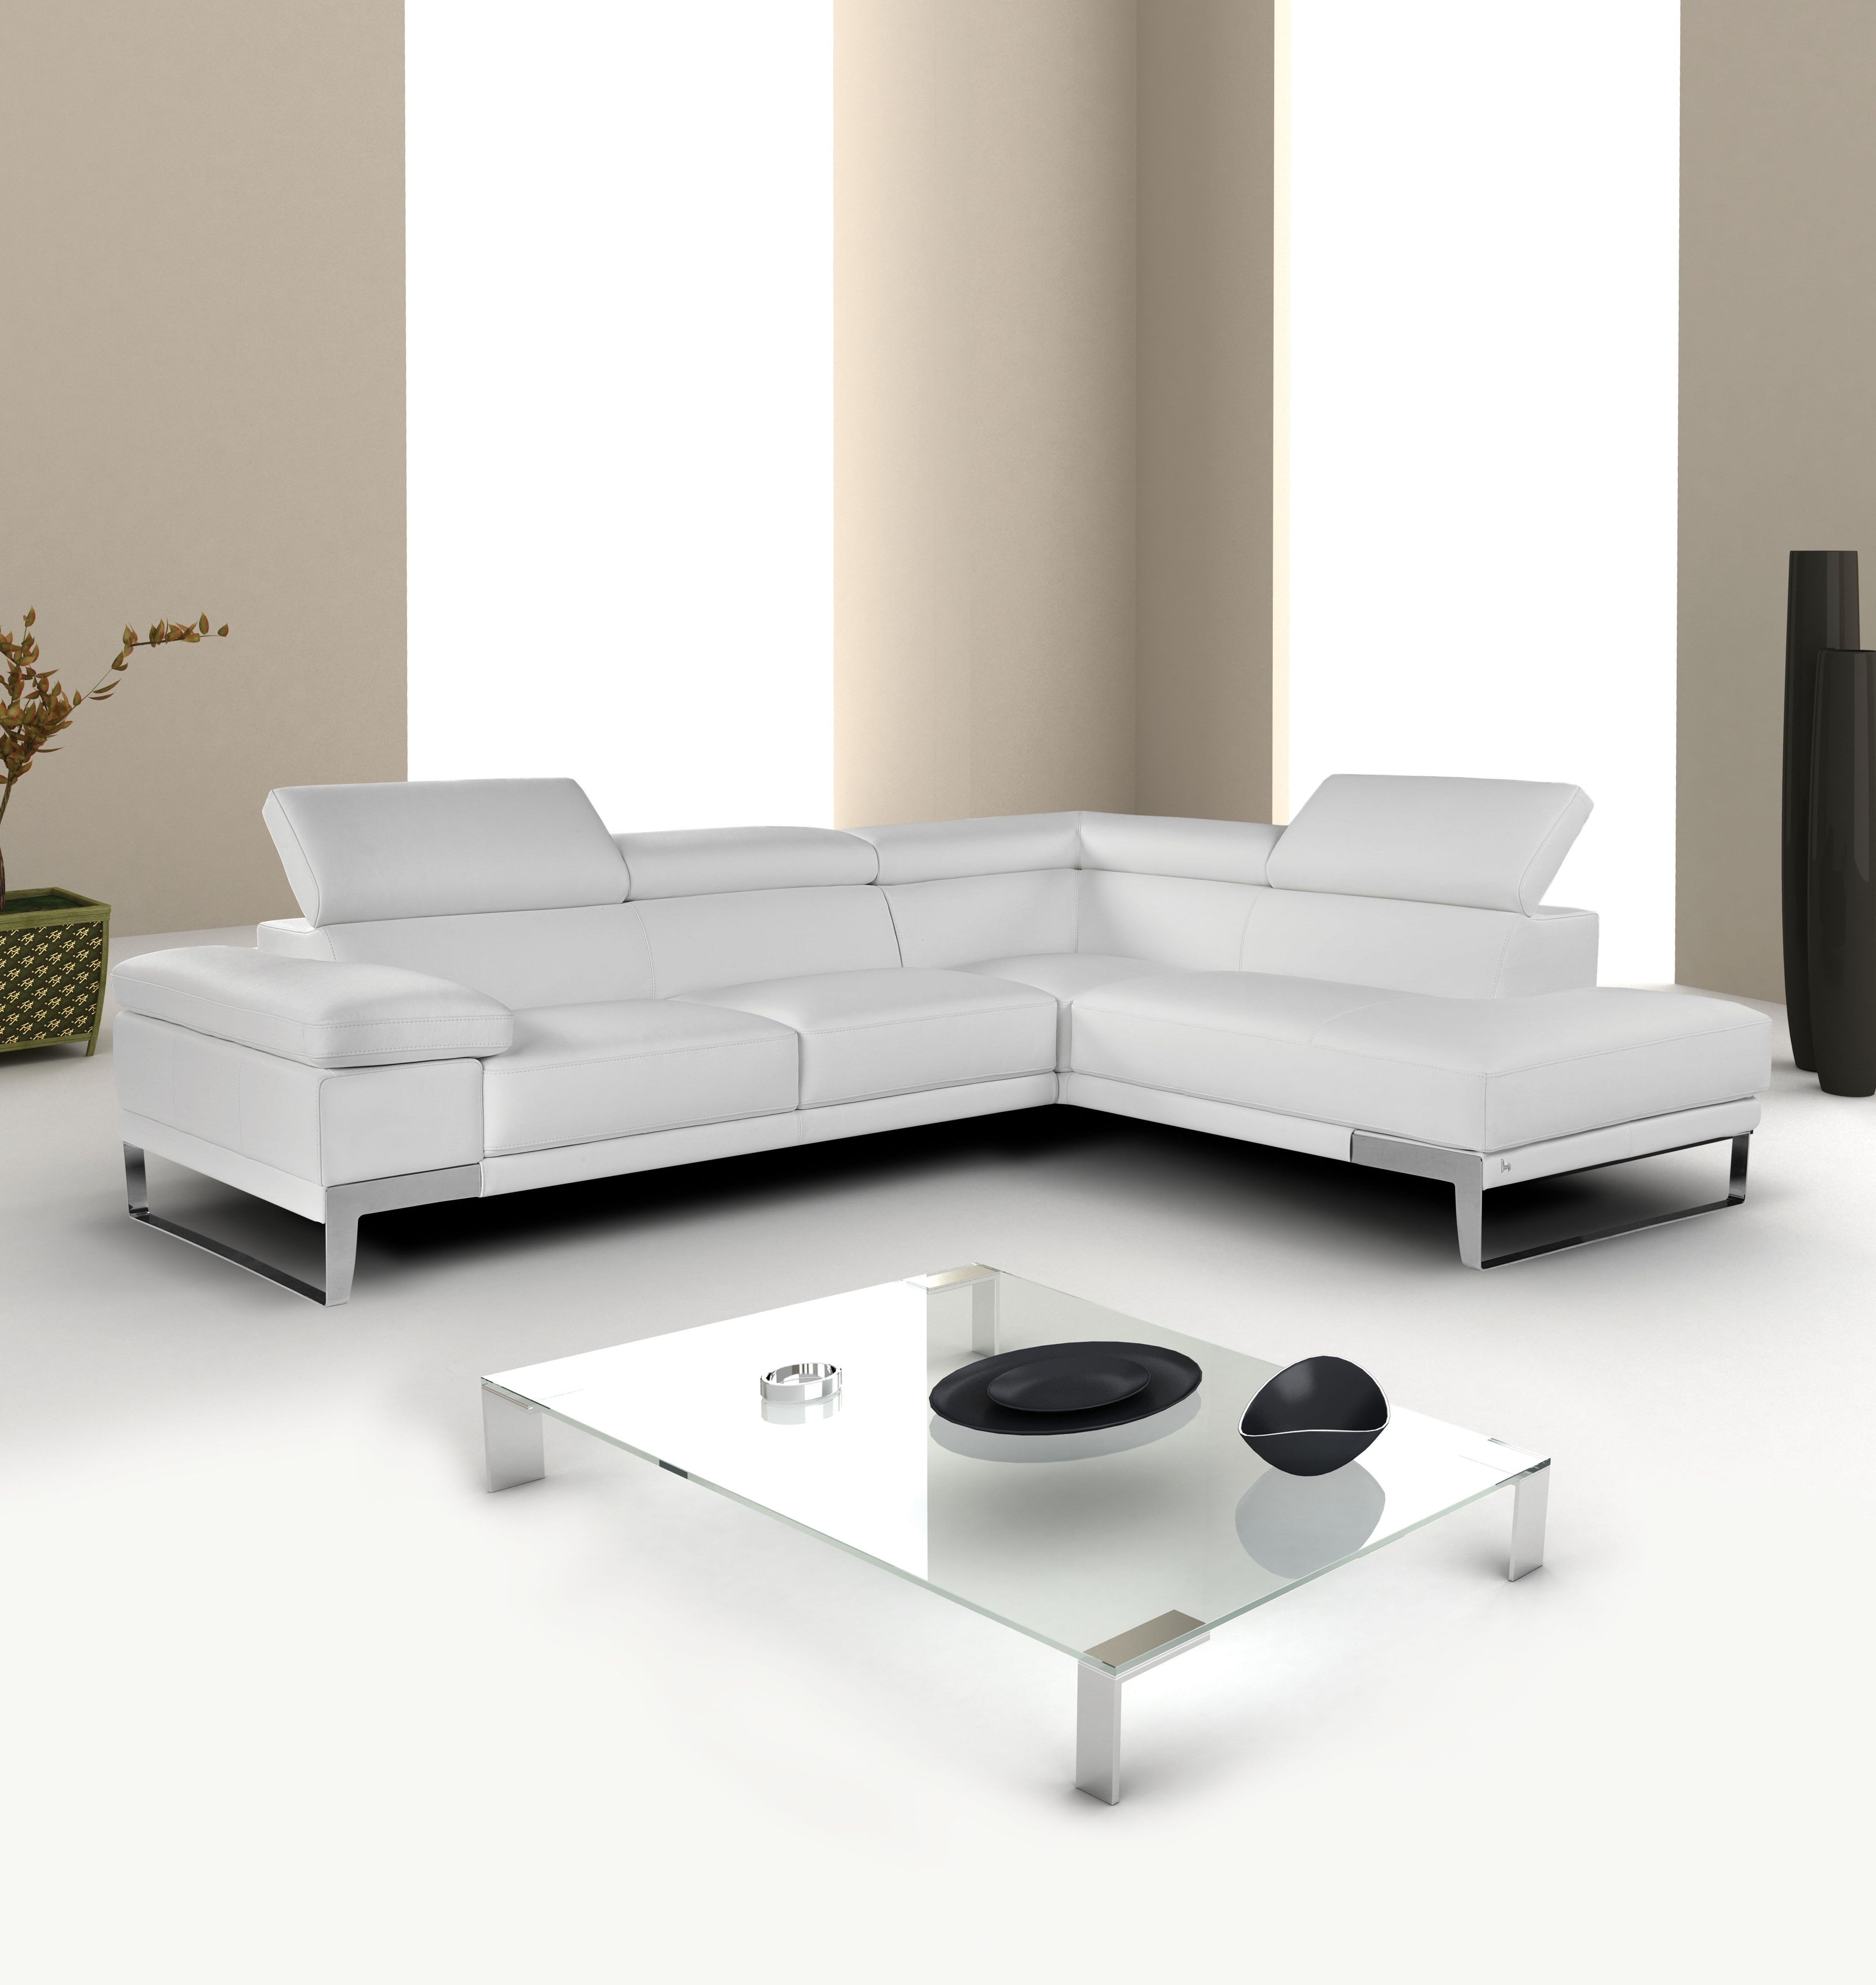 Sectional Modern Sofa Interior White Button Leather Furniture In Well Known Vancouver Bc Canada Sectional Sofas (View 12 of 15)